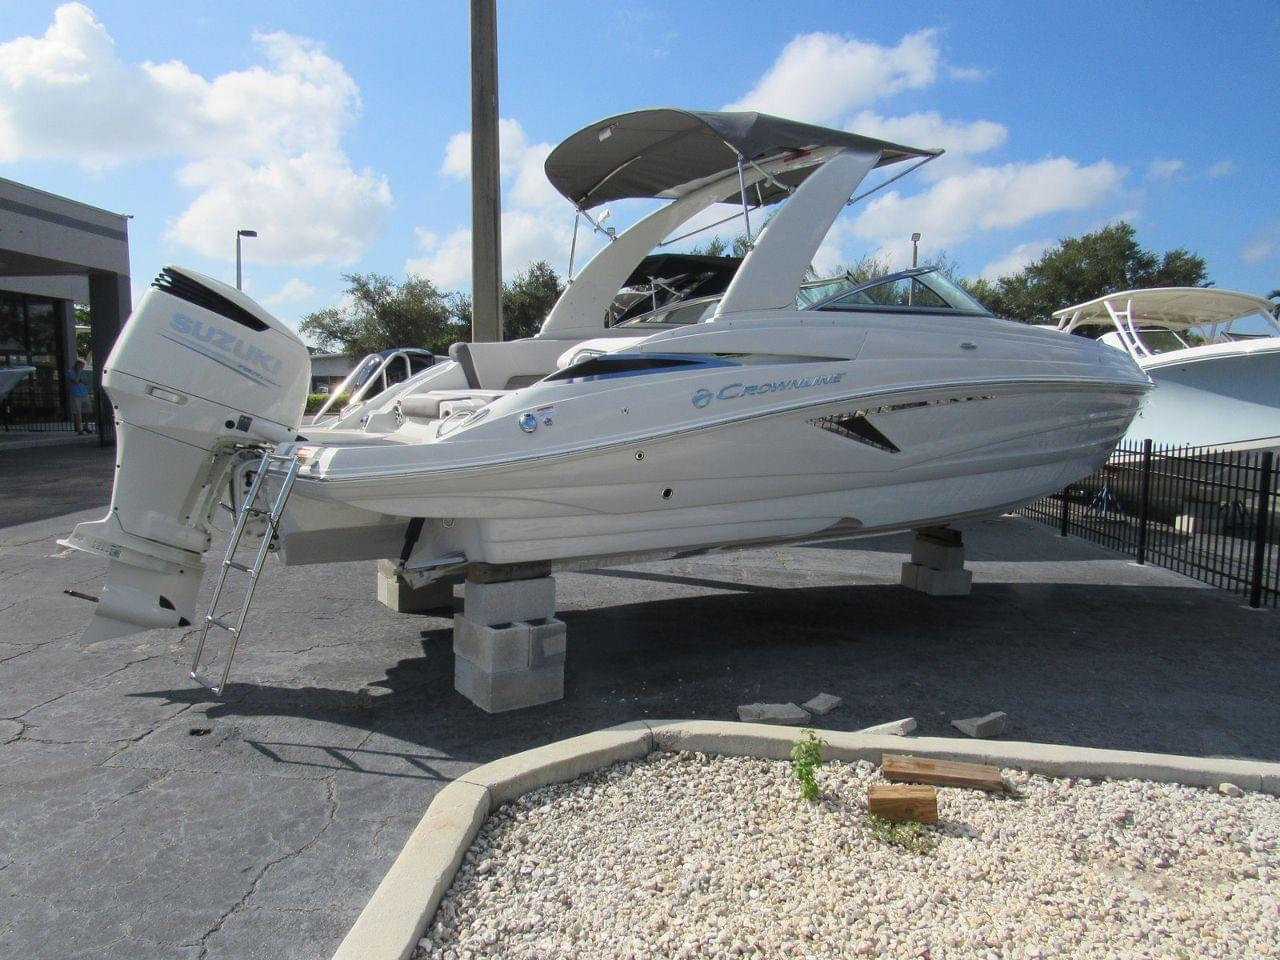 New 2020 Crownline 270 Xss Stock 520148 B1 The Boat House